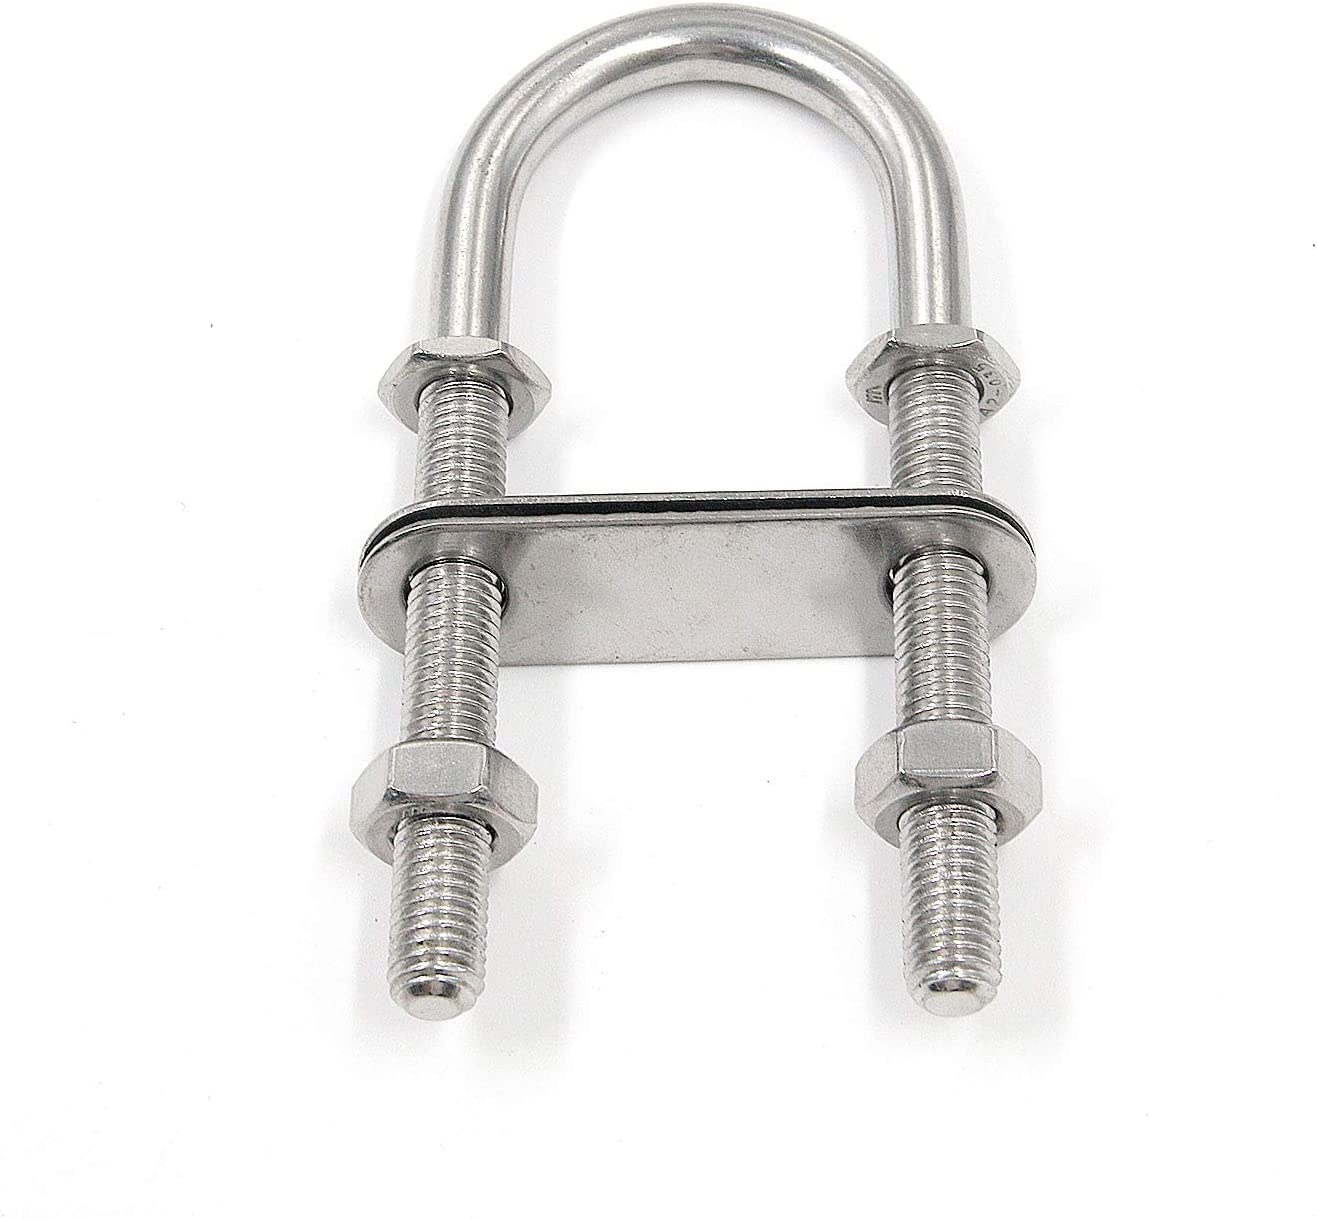 NovelBee 2-Pack 3//8 Stock Stainless Steel Stern Bow Eye U Bolt with Welding Plate,Washer and Hex Nuts Overall Length:4